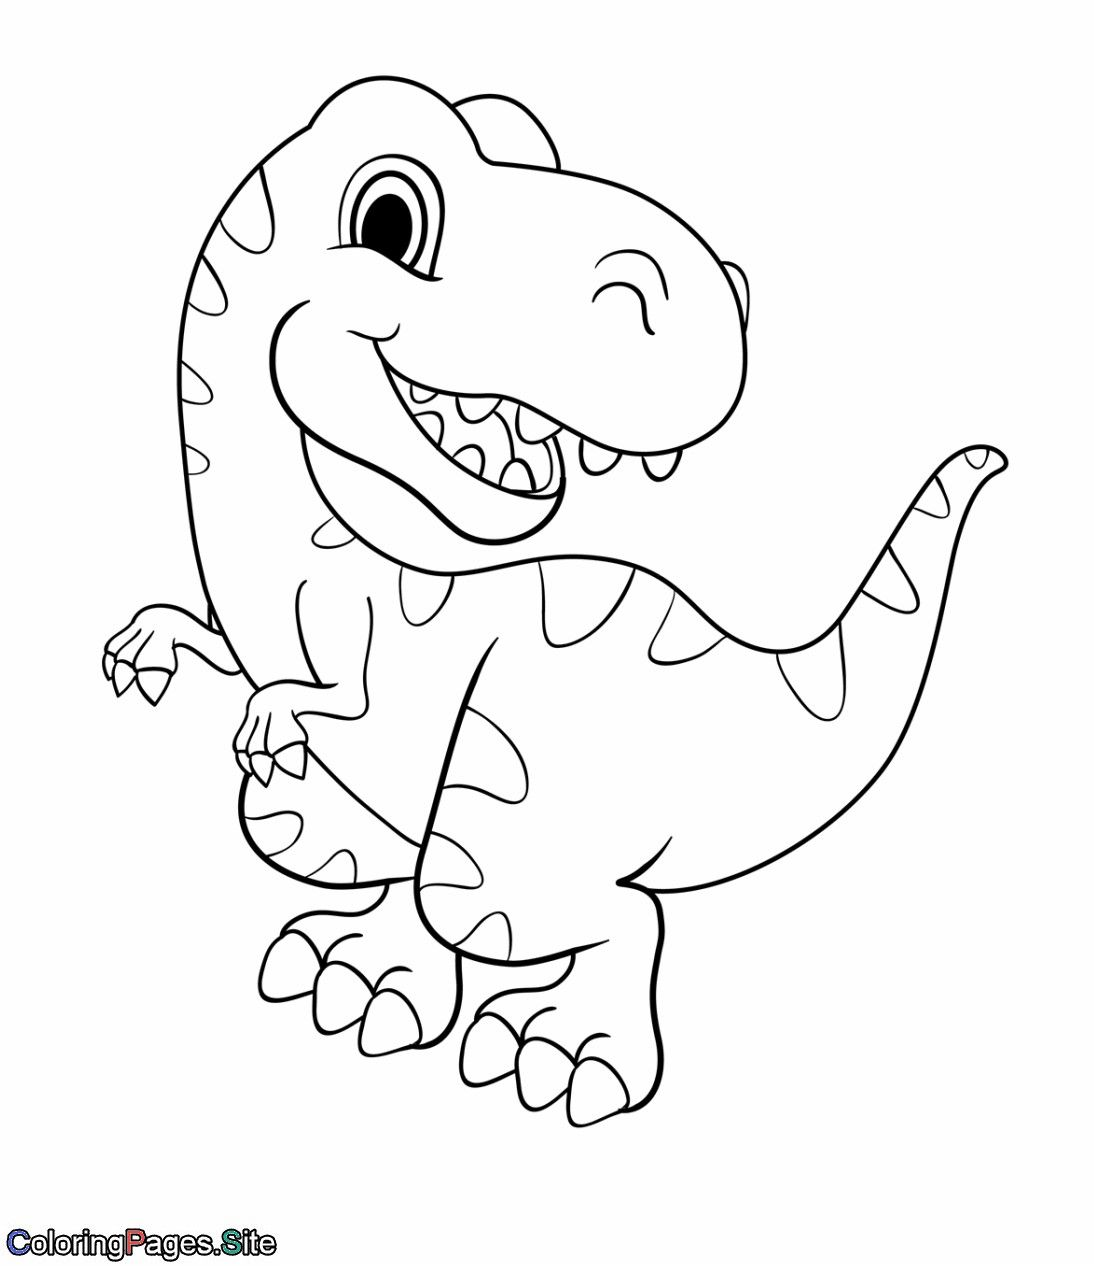 10+ Great Photo of Dinosaur Coloring Pages - entitlementtrap.com